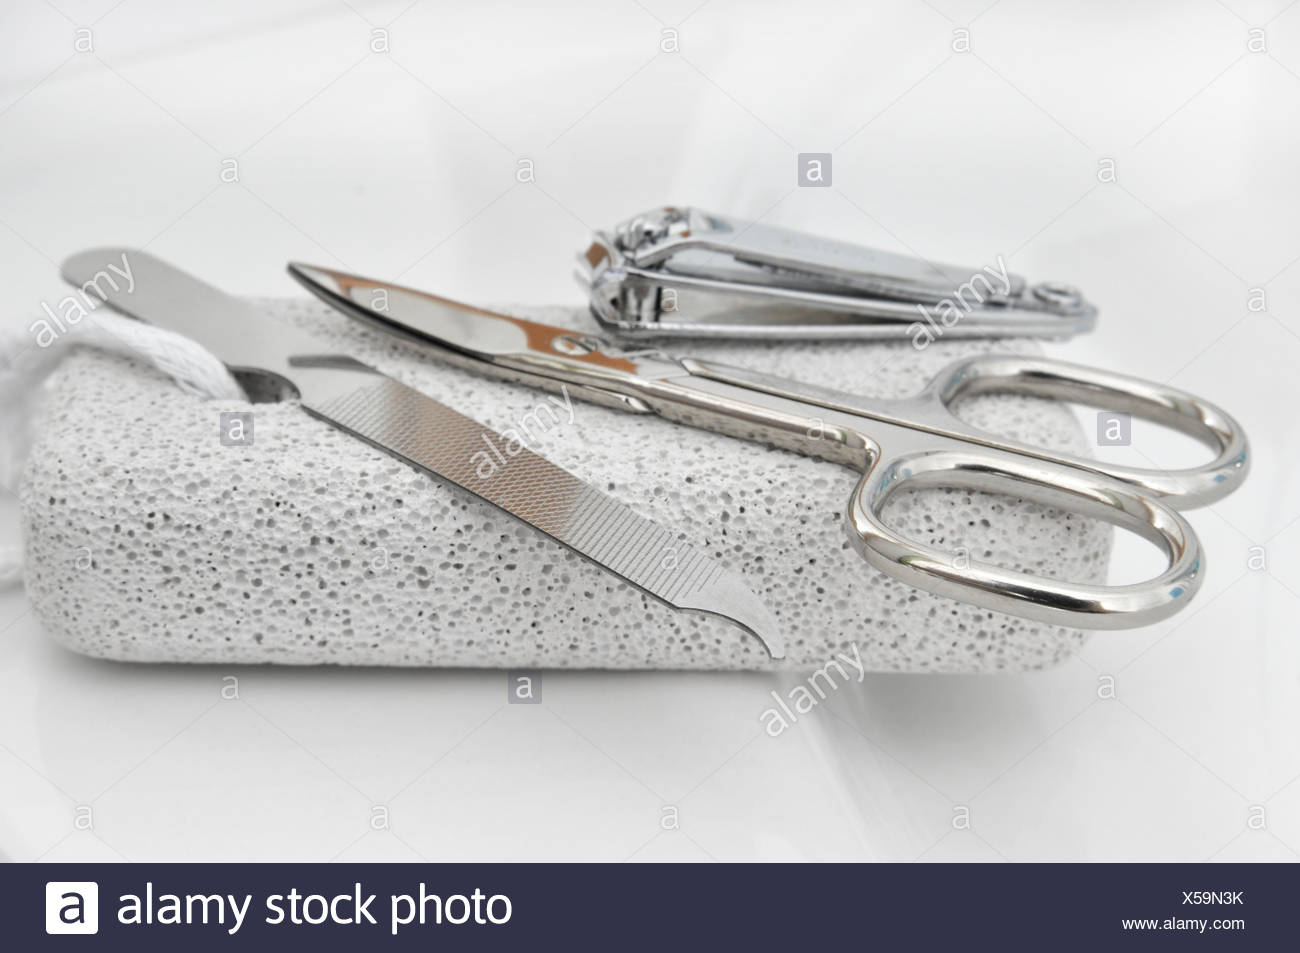 manicure nail clippers nail file Stock Photo: 278653303 - Alamy